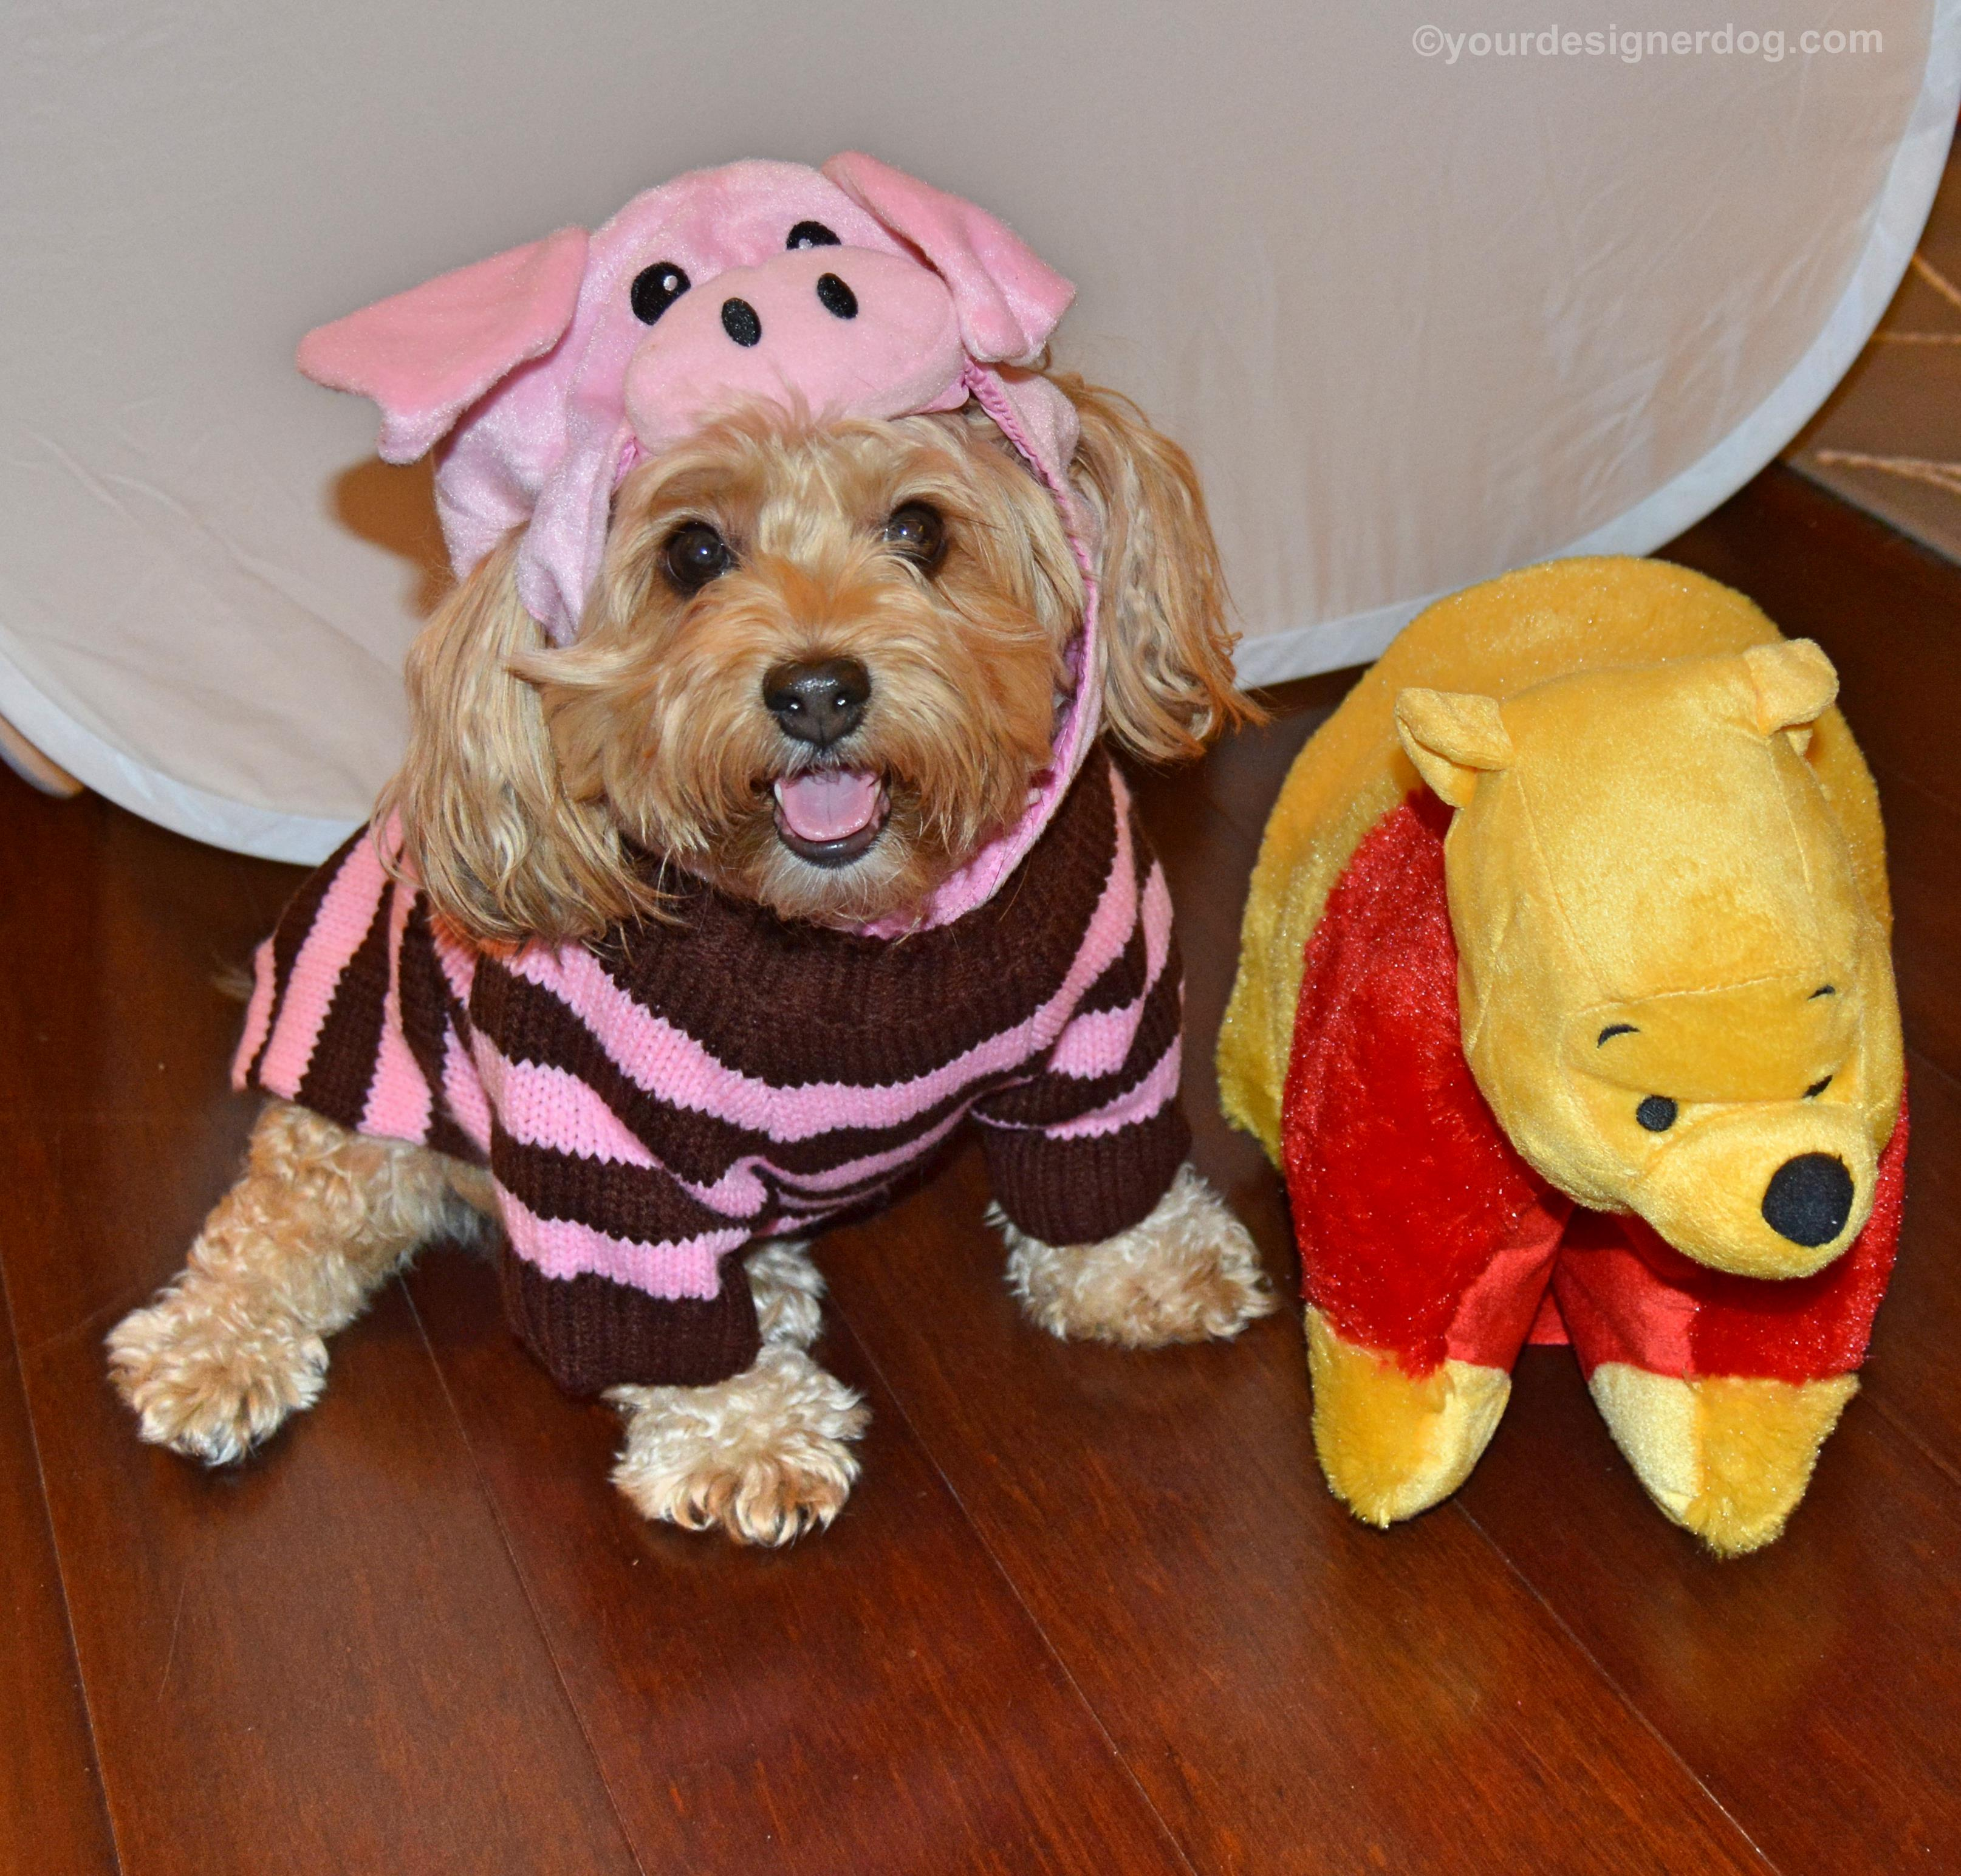 dogs, designer dogs, yorkipoo, yorkie poo, piglet, halloween costume, dog costume, winnie the pooh